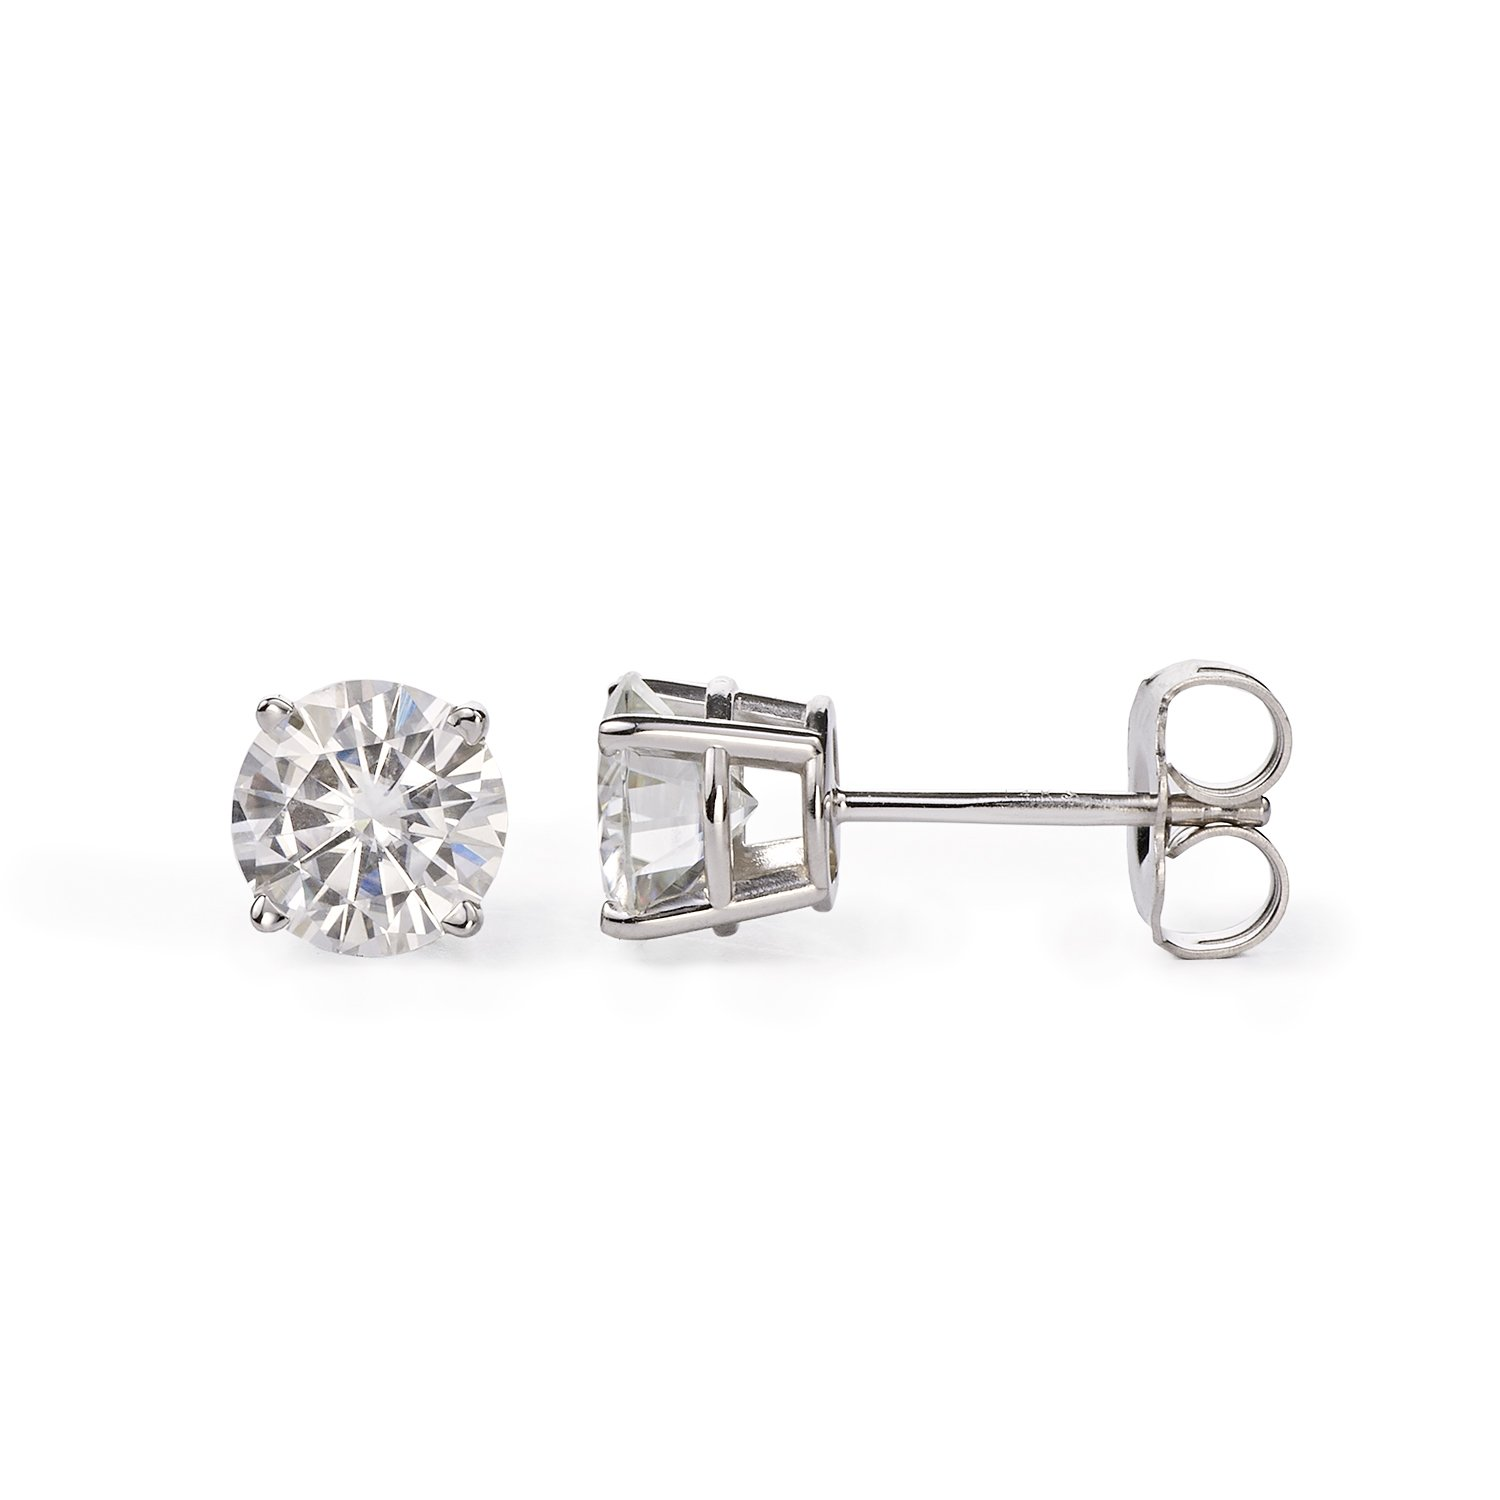 Forever One 6.0mm Round Cut Moissanite Stud Earrings, 1.60cttw DEW (G-H-I) By Charles & Colvard by Charles & Colvard